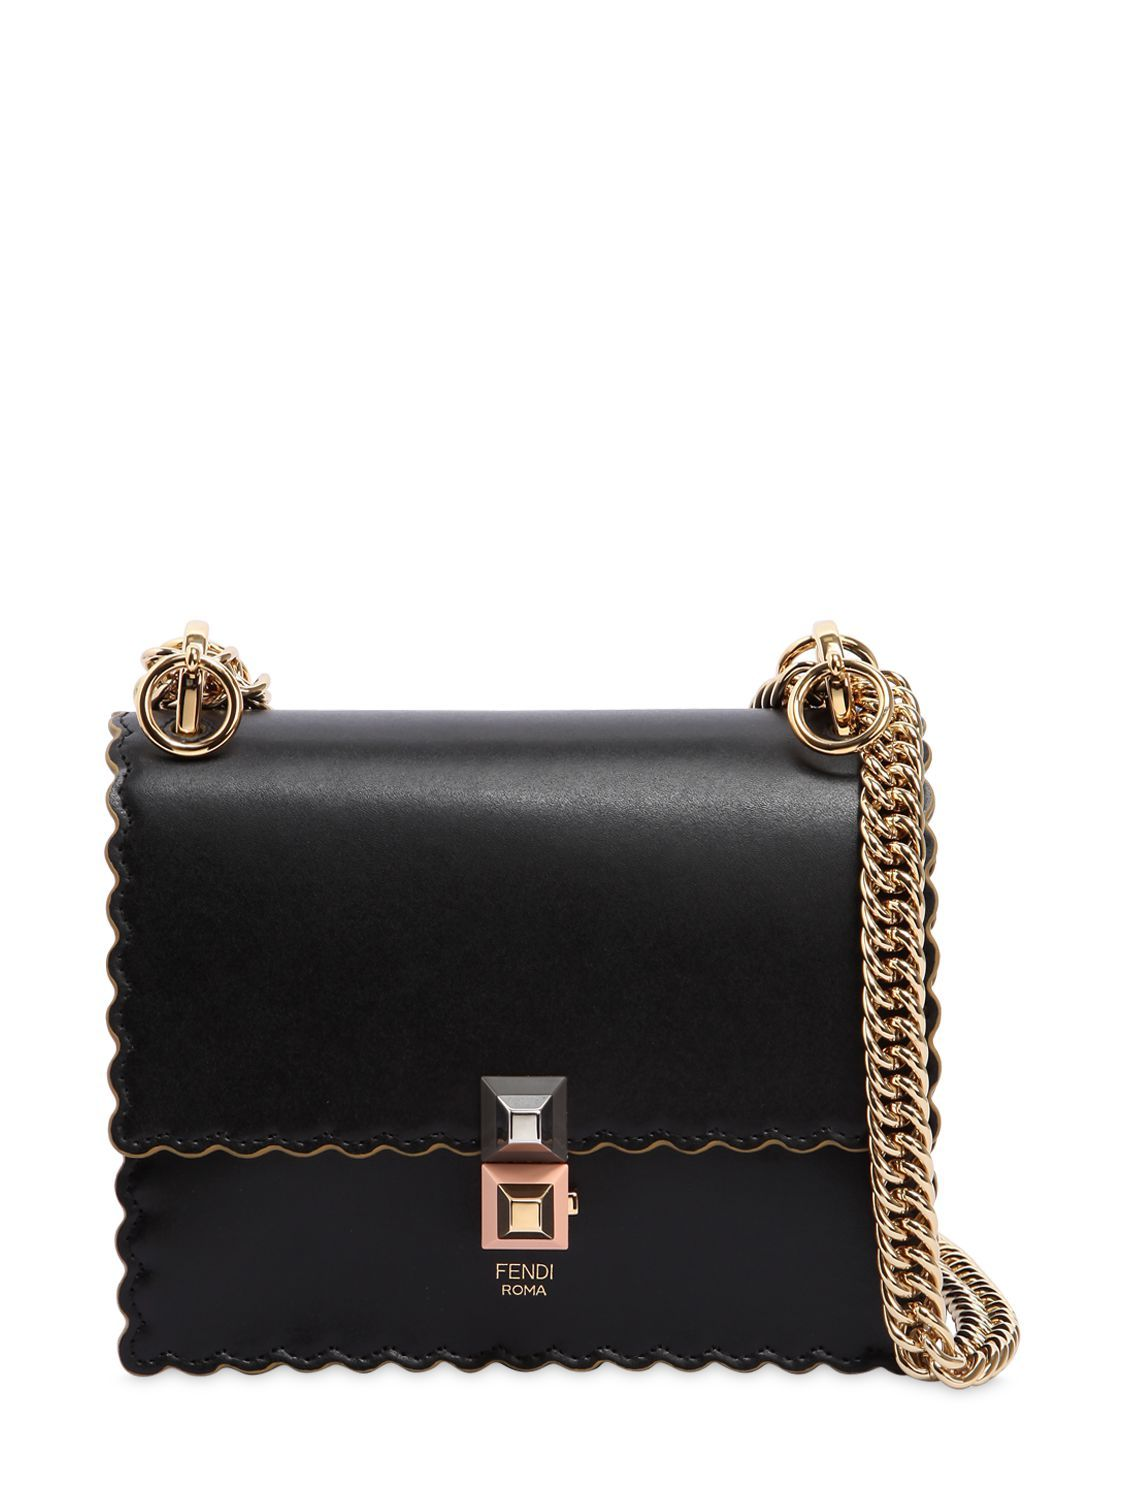 Outlet With Paypal Order 2018 Cheap Price Kan I small shoulder bag - Brown Fendi Sale Wide Range Of 9BGagY